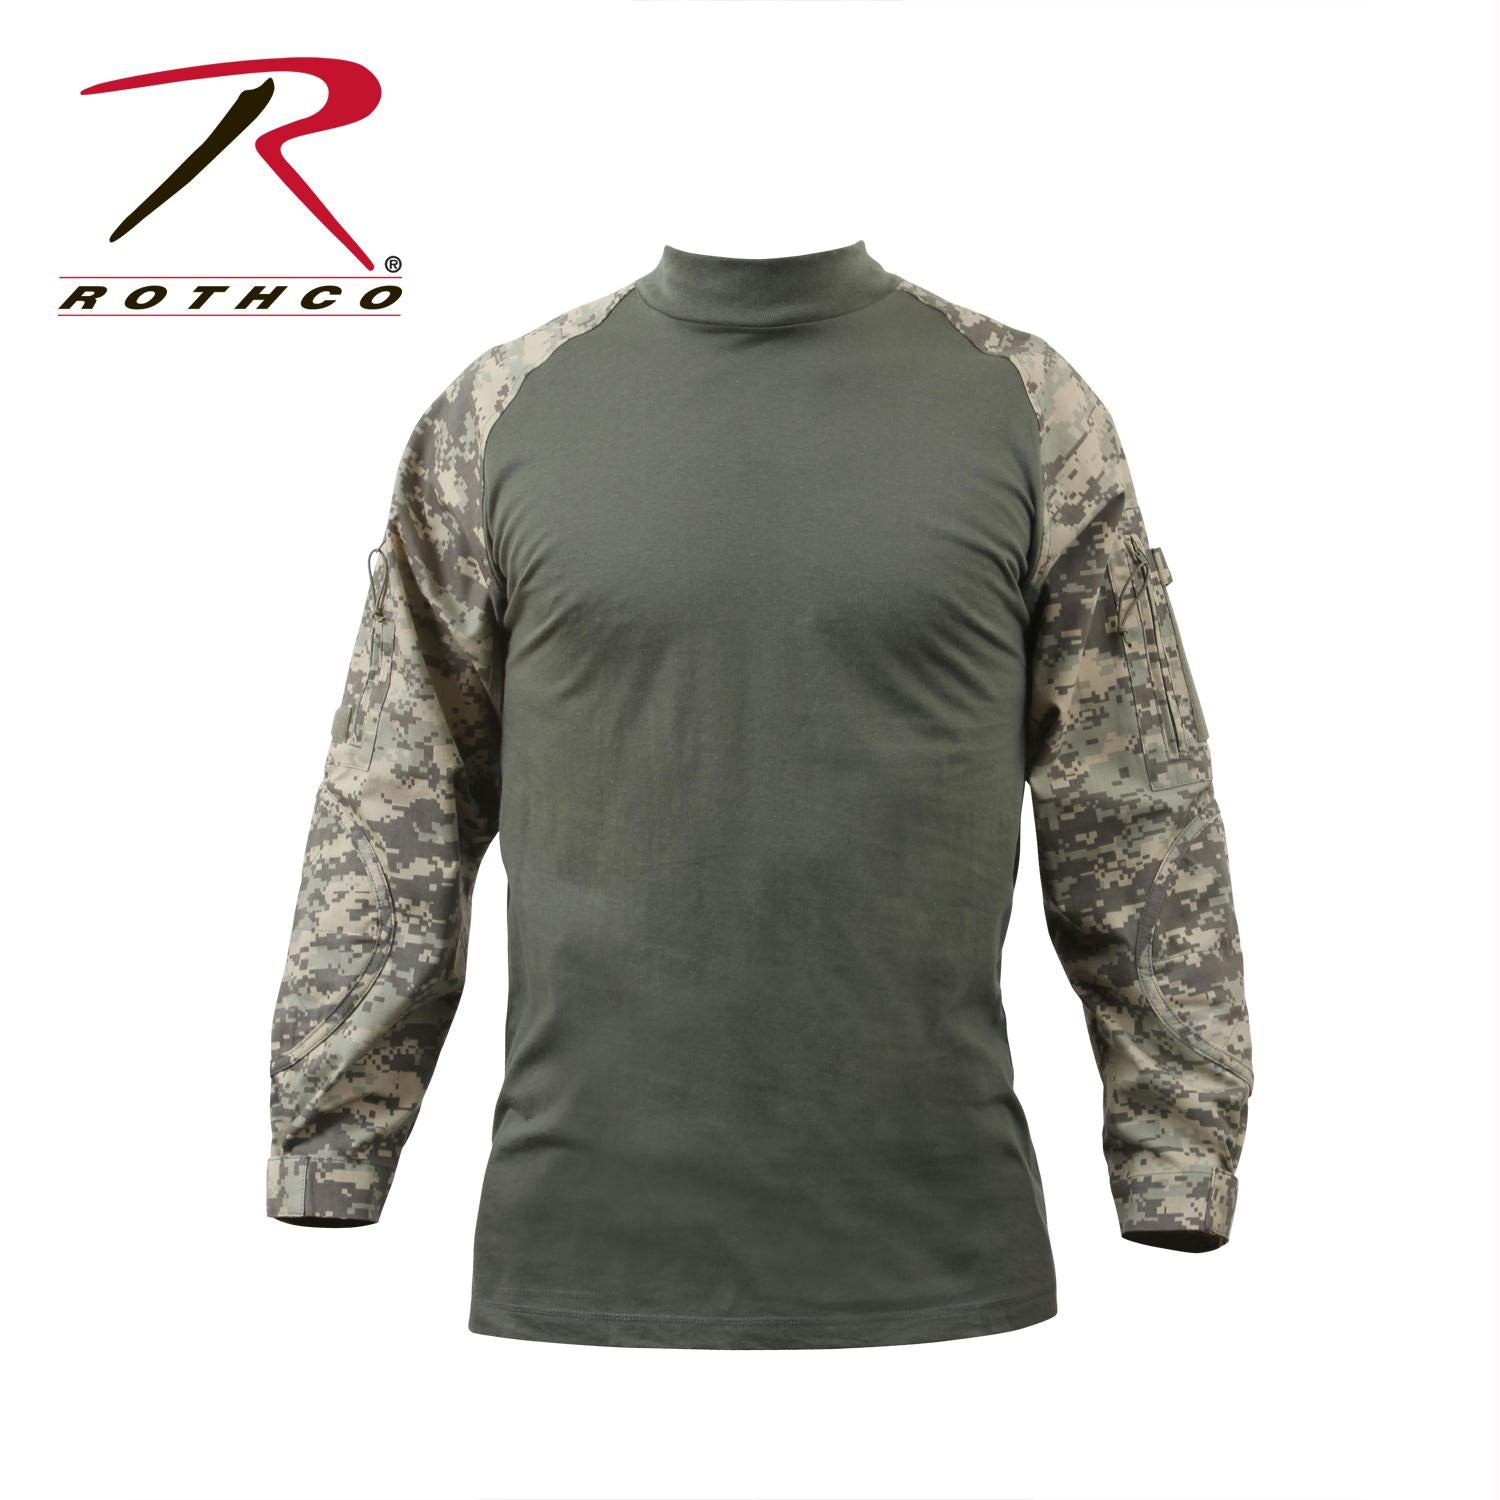 Rothco Military FR NYCO Combat Shirt - ACU Digital Camo / 2XL